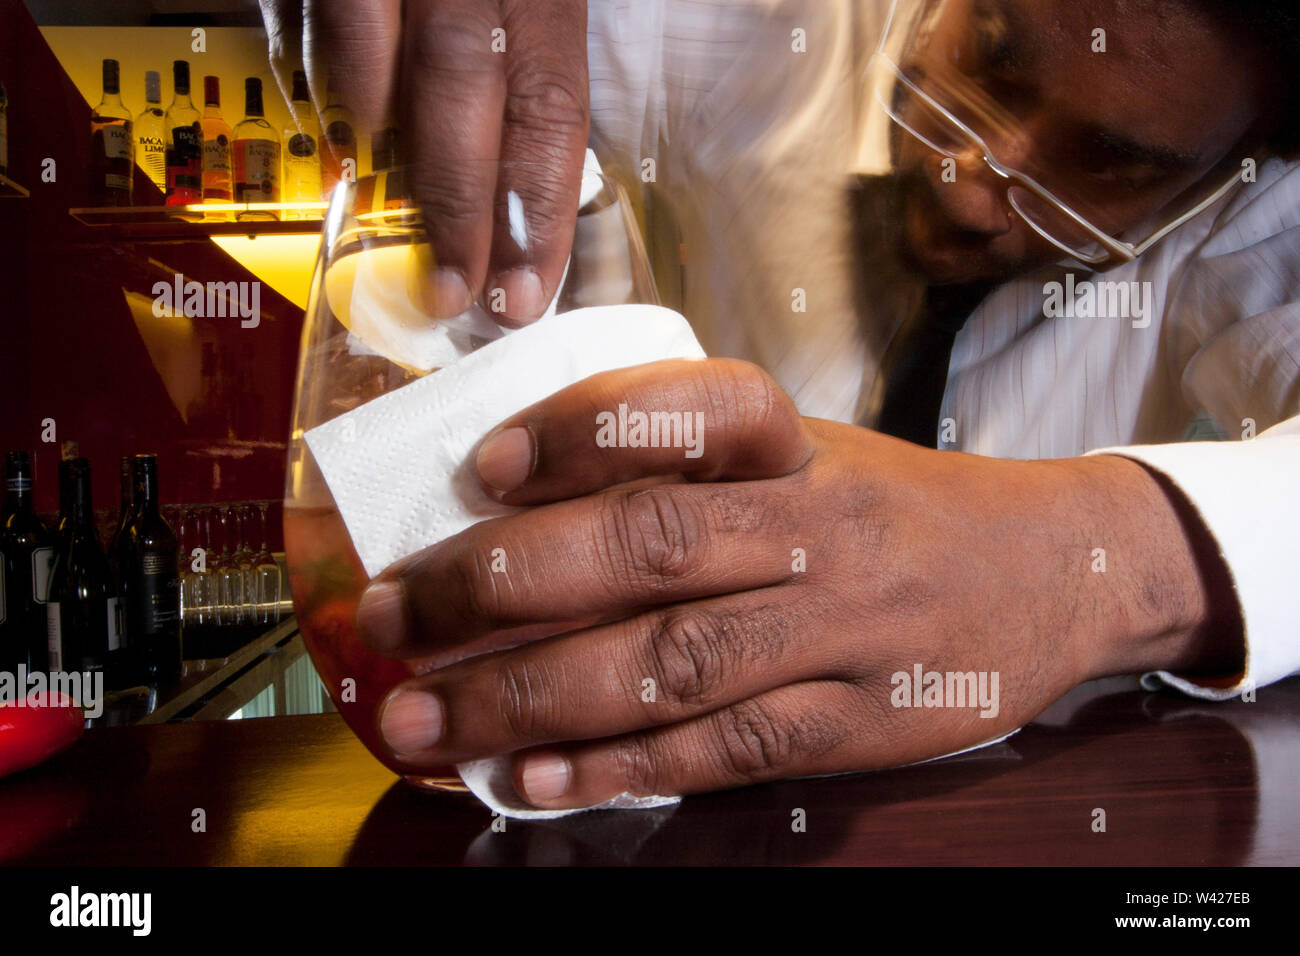 Man making a juice on wooden table, inside at a hotel, colorized photograph including perfect lights, very tasty cool drink of luxury restaurant. - Stock Image